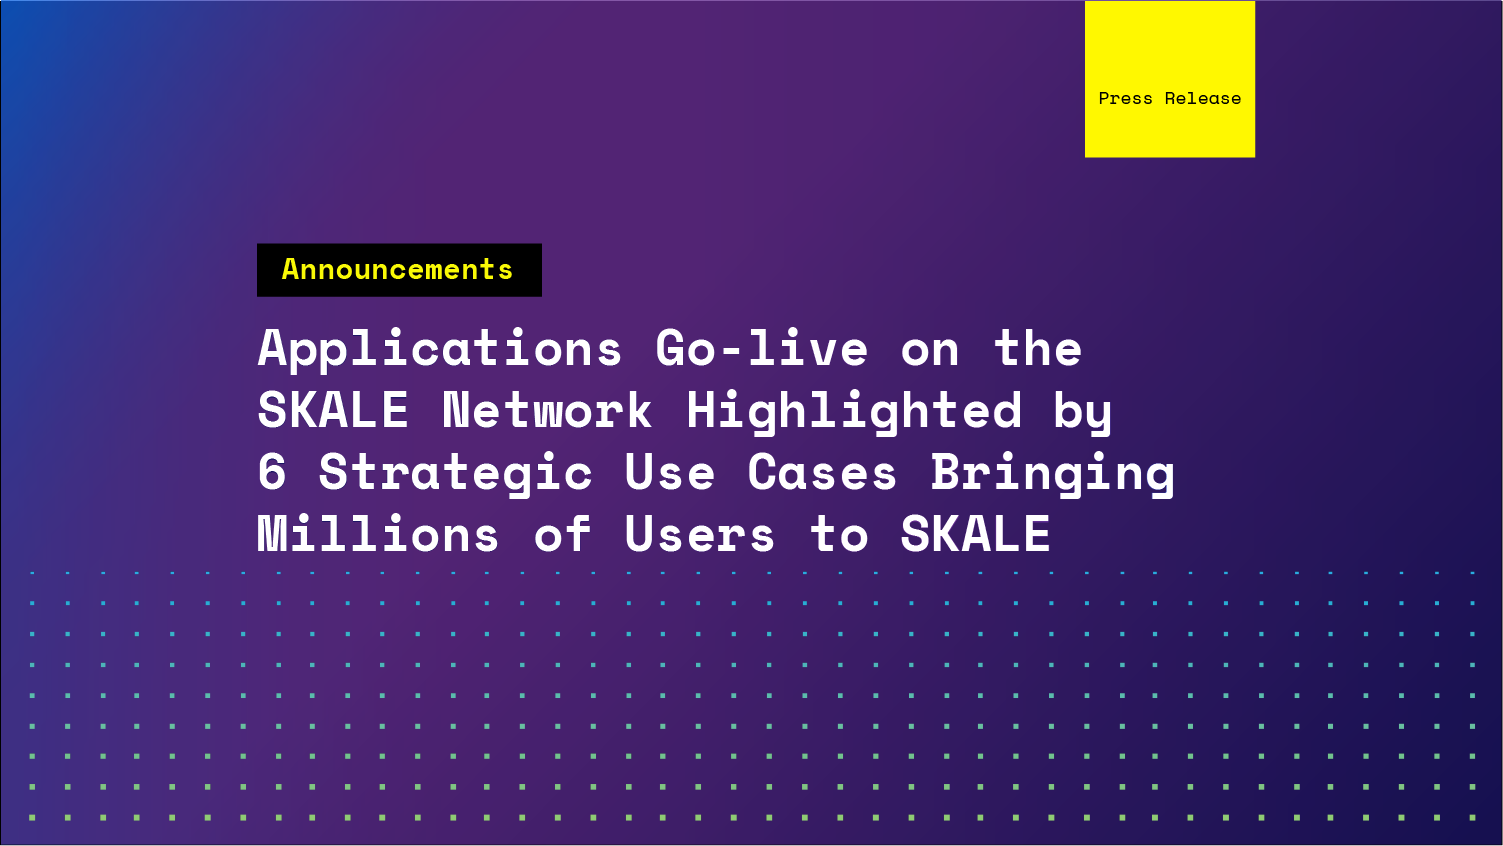 Applications Go-live on the SKALE Network Highlighted by 6 Strategic Use Cases Bringing Millions of Users to SKALE